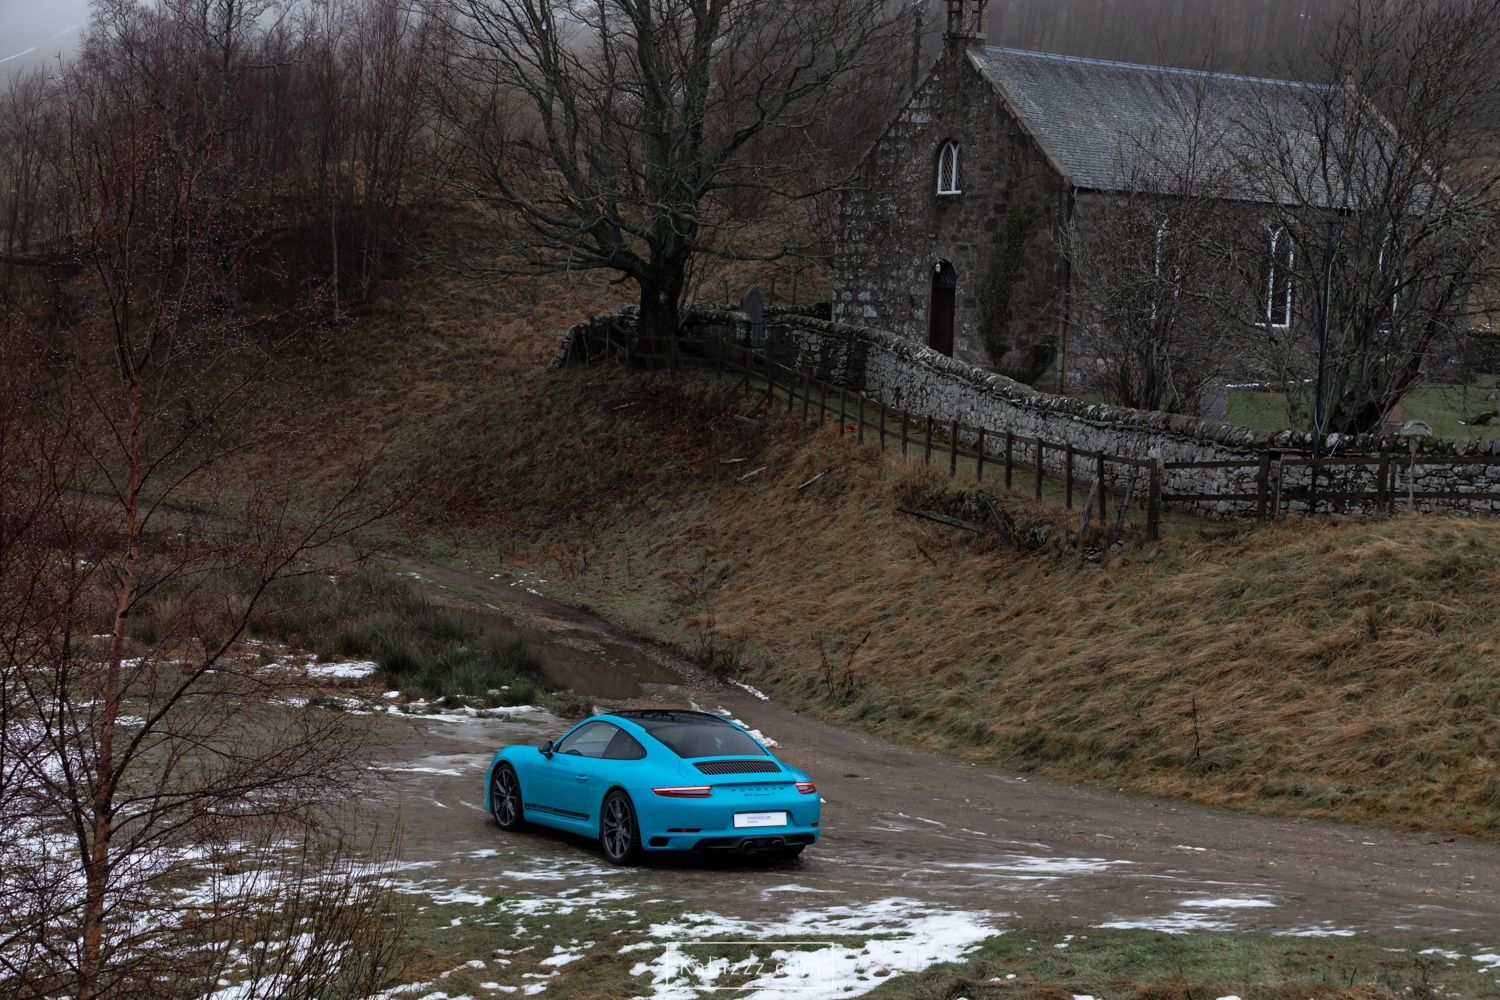 porsche_911_carrera_t_miamiblue_scotland_photography_automotive_photography_kabizzz-8.jpg